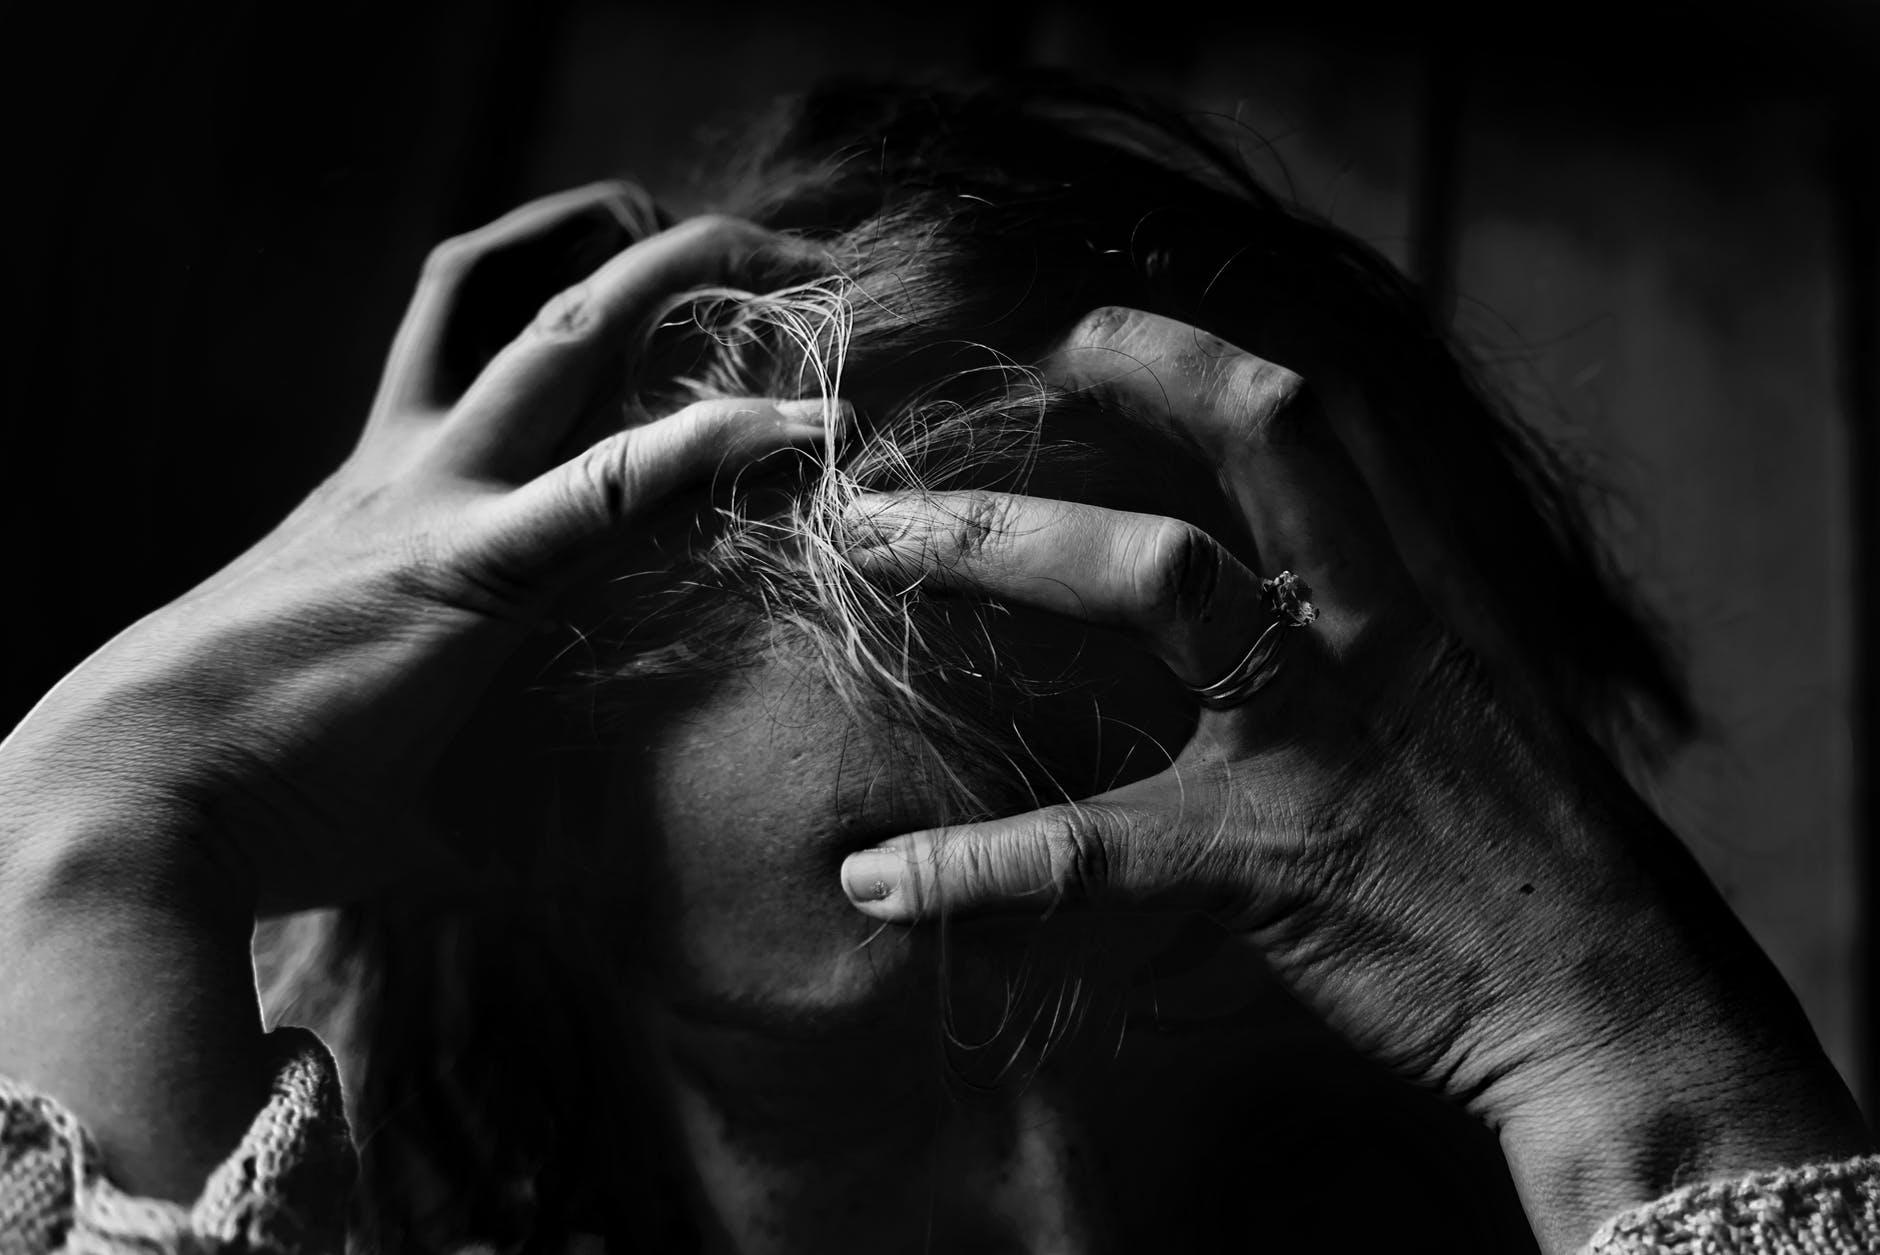 Signs Of PTSD After A Car Accident